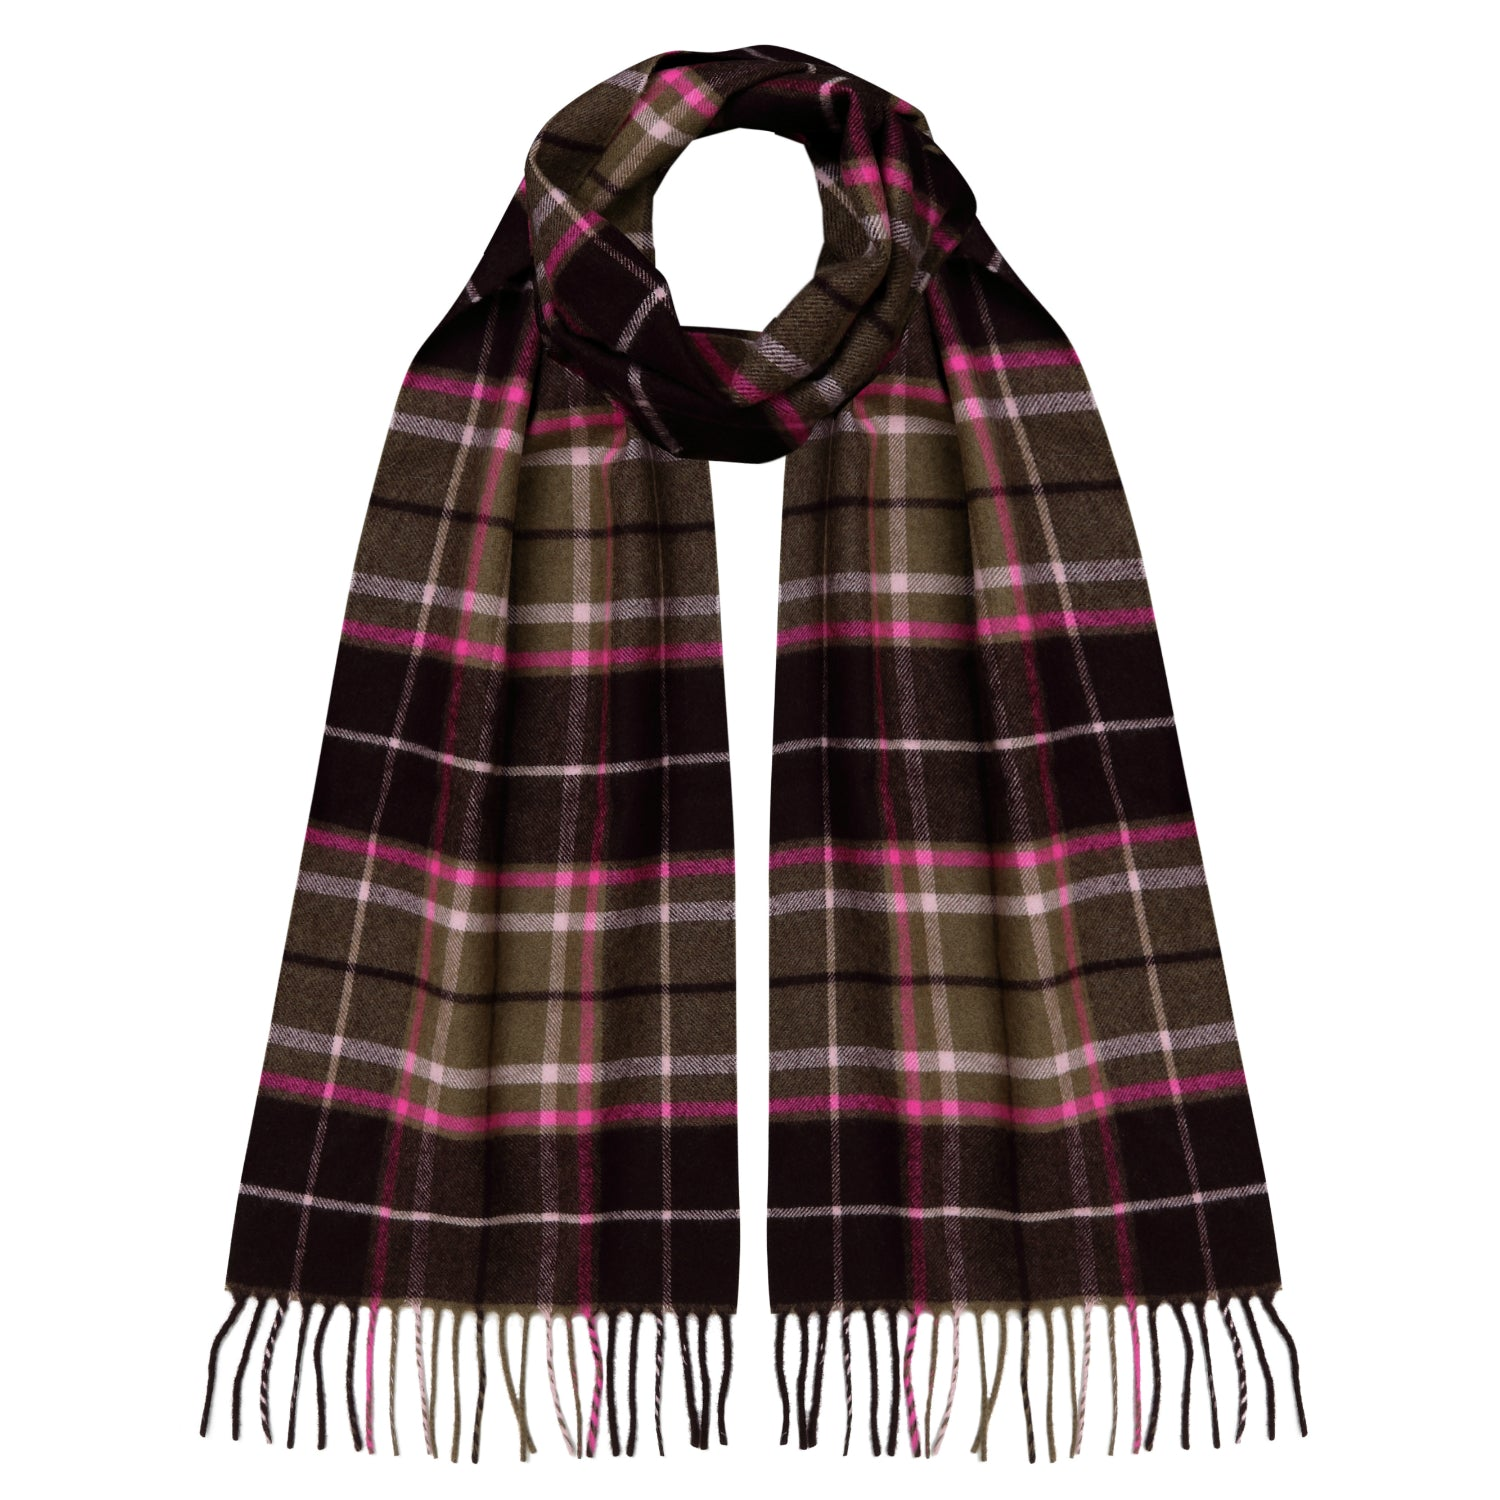 Lomond Cashmere | Bottle Green Overcheck | Check Cashmere Scarf | Shop at The Cashmere Choice | London